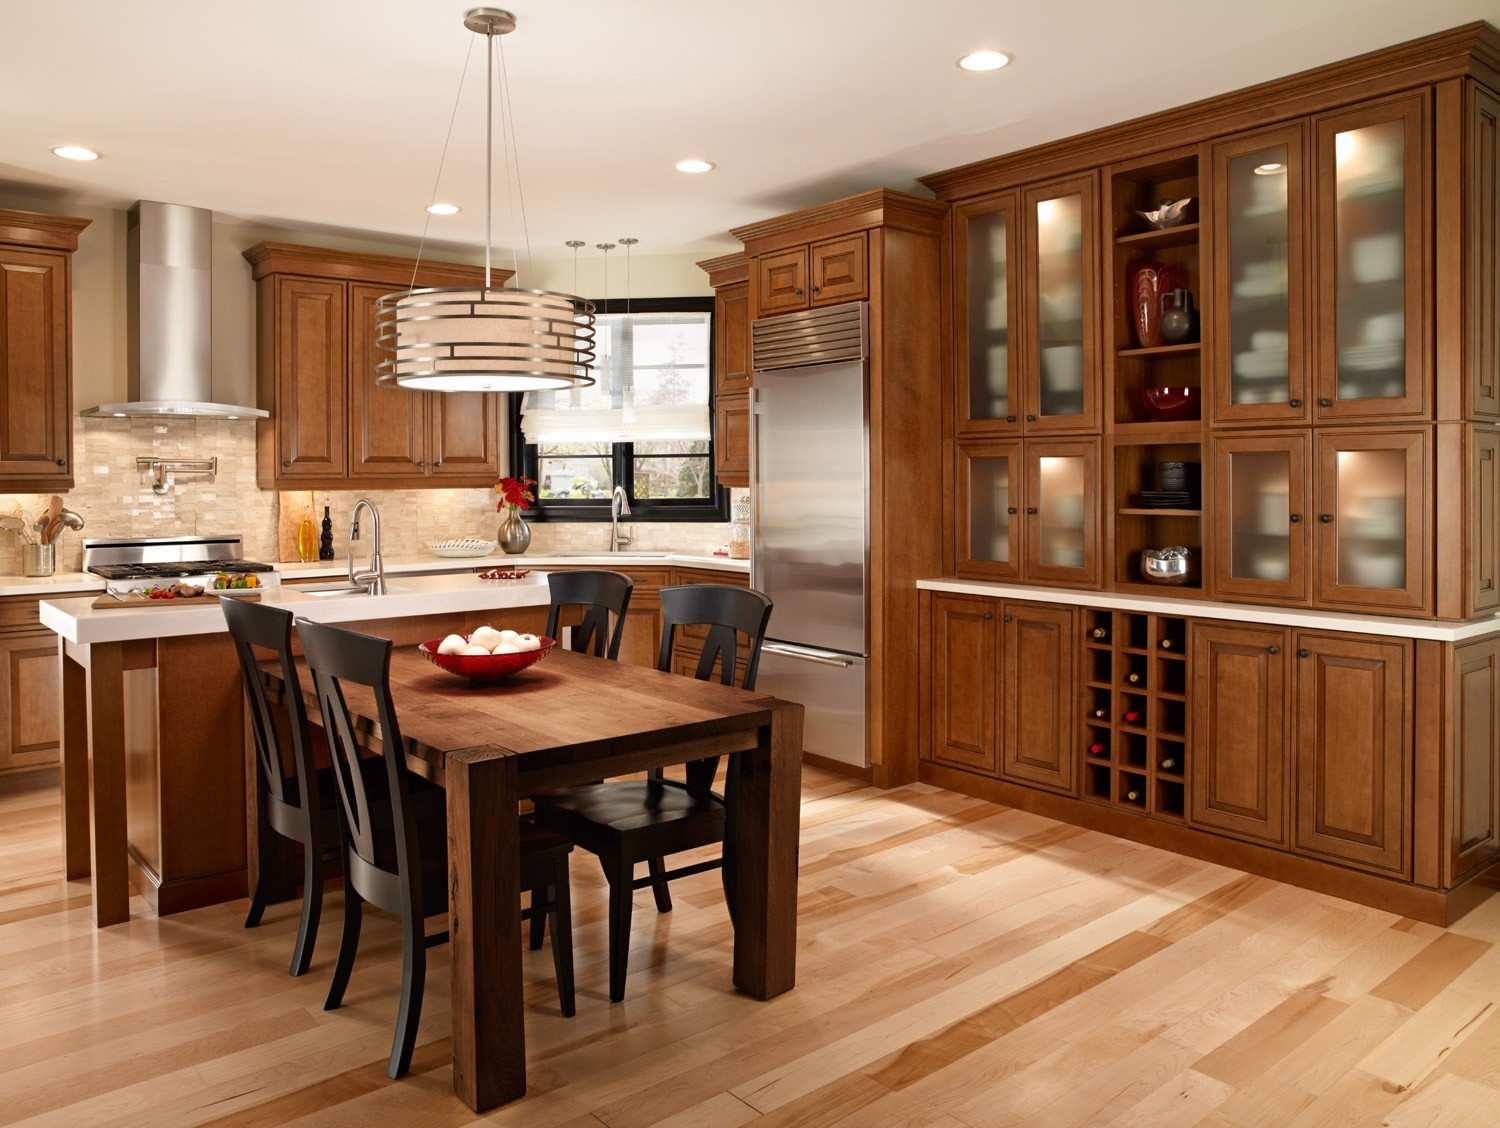 Cabinetry Kitchens Bathrooms Harbor Design Center Petoskey Harbor Springs Northern